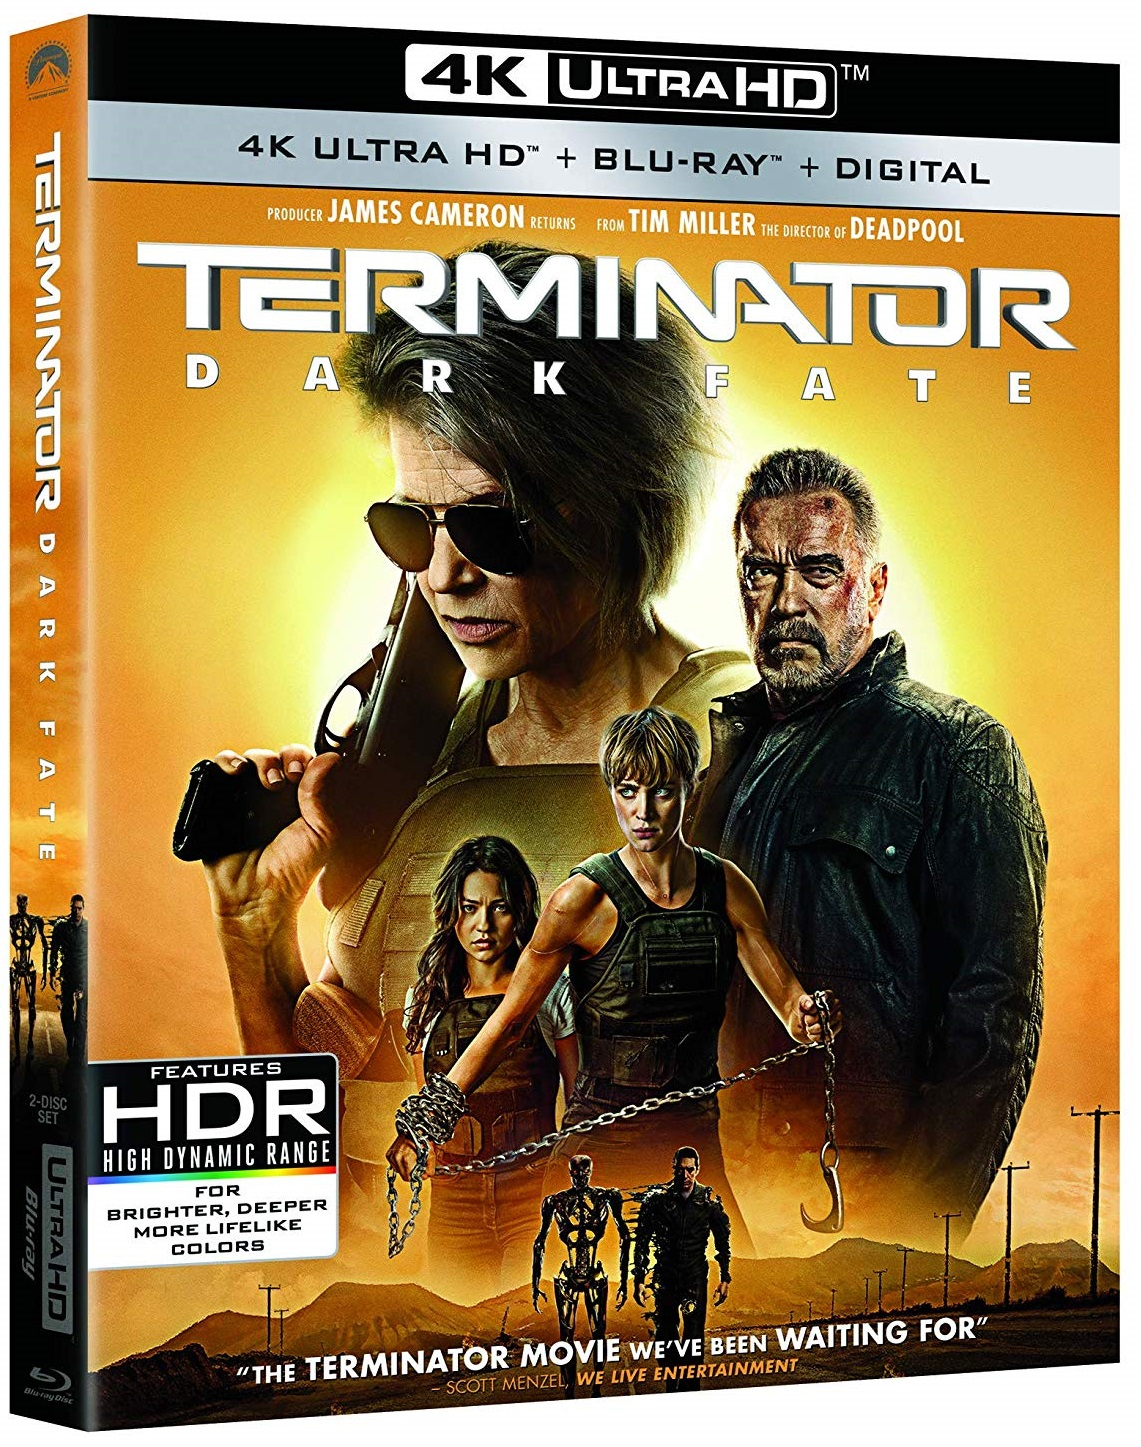 [GIVEAWAY] Win 'Terminator: Dark Fate' On 4K Ultra HD: Available On 4K Ultra HD, Blu-ray & DVD January 28, 2020 From Paramount 5